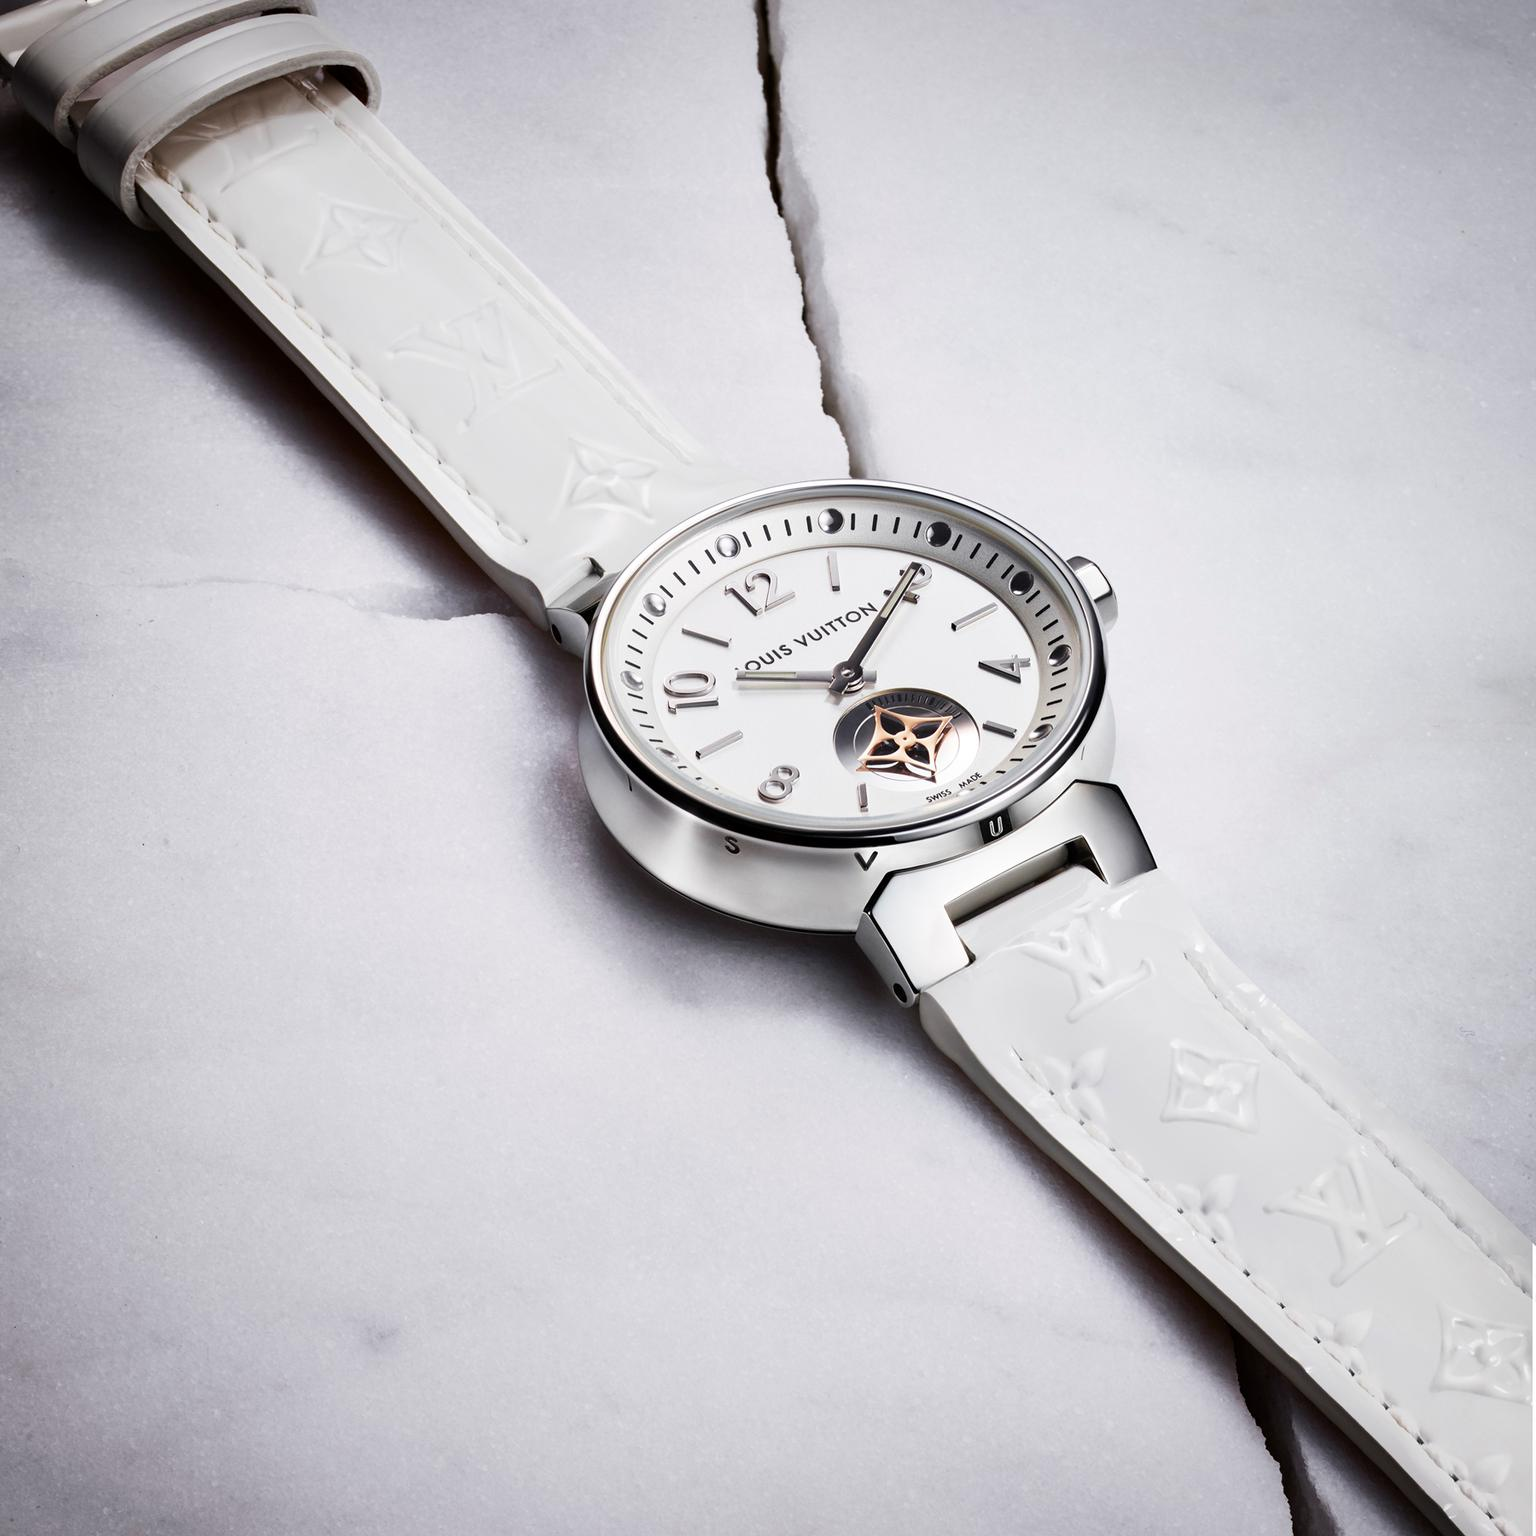 Louis Vuitton Tambour Moon Star Seconde White watch